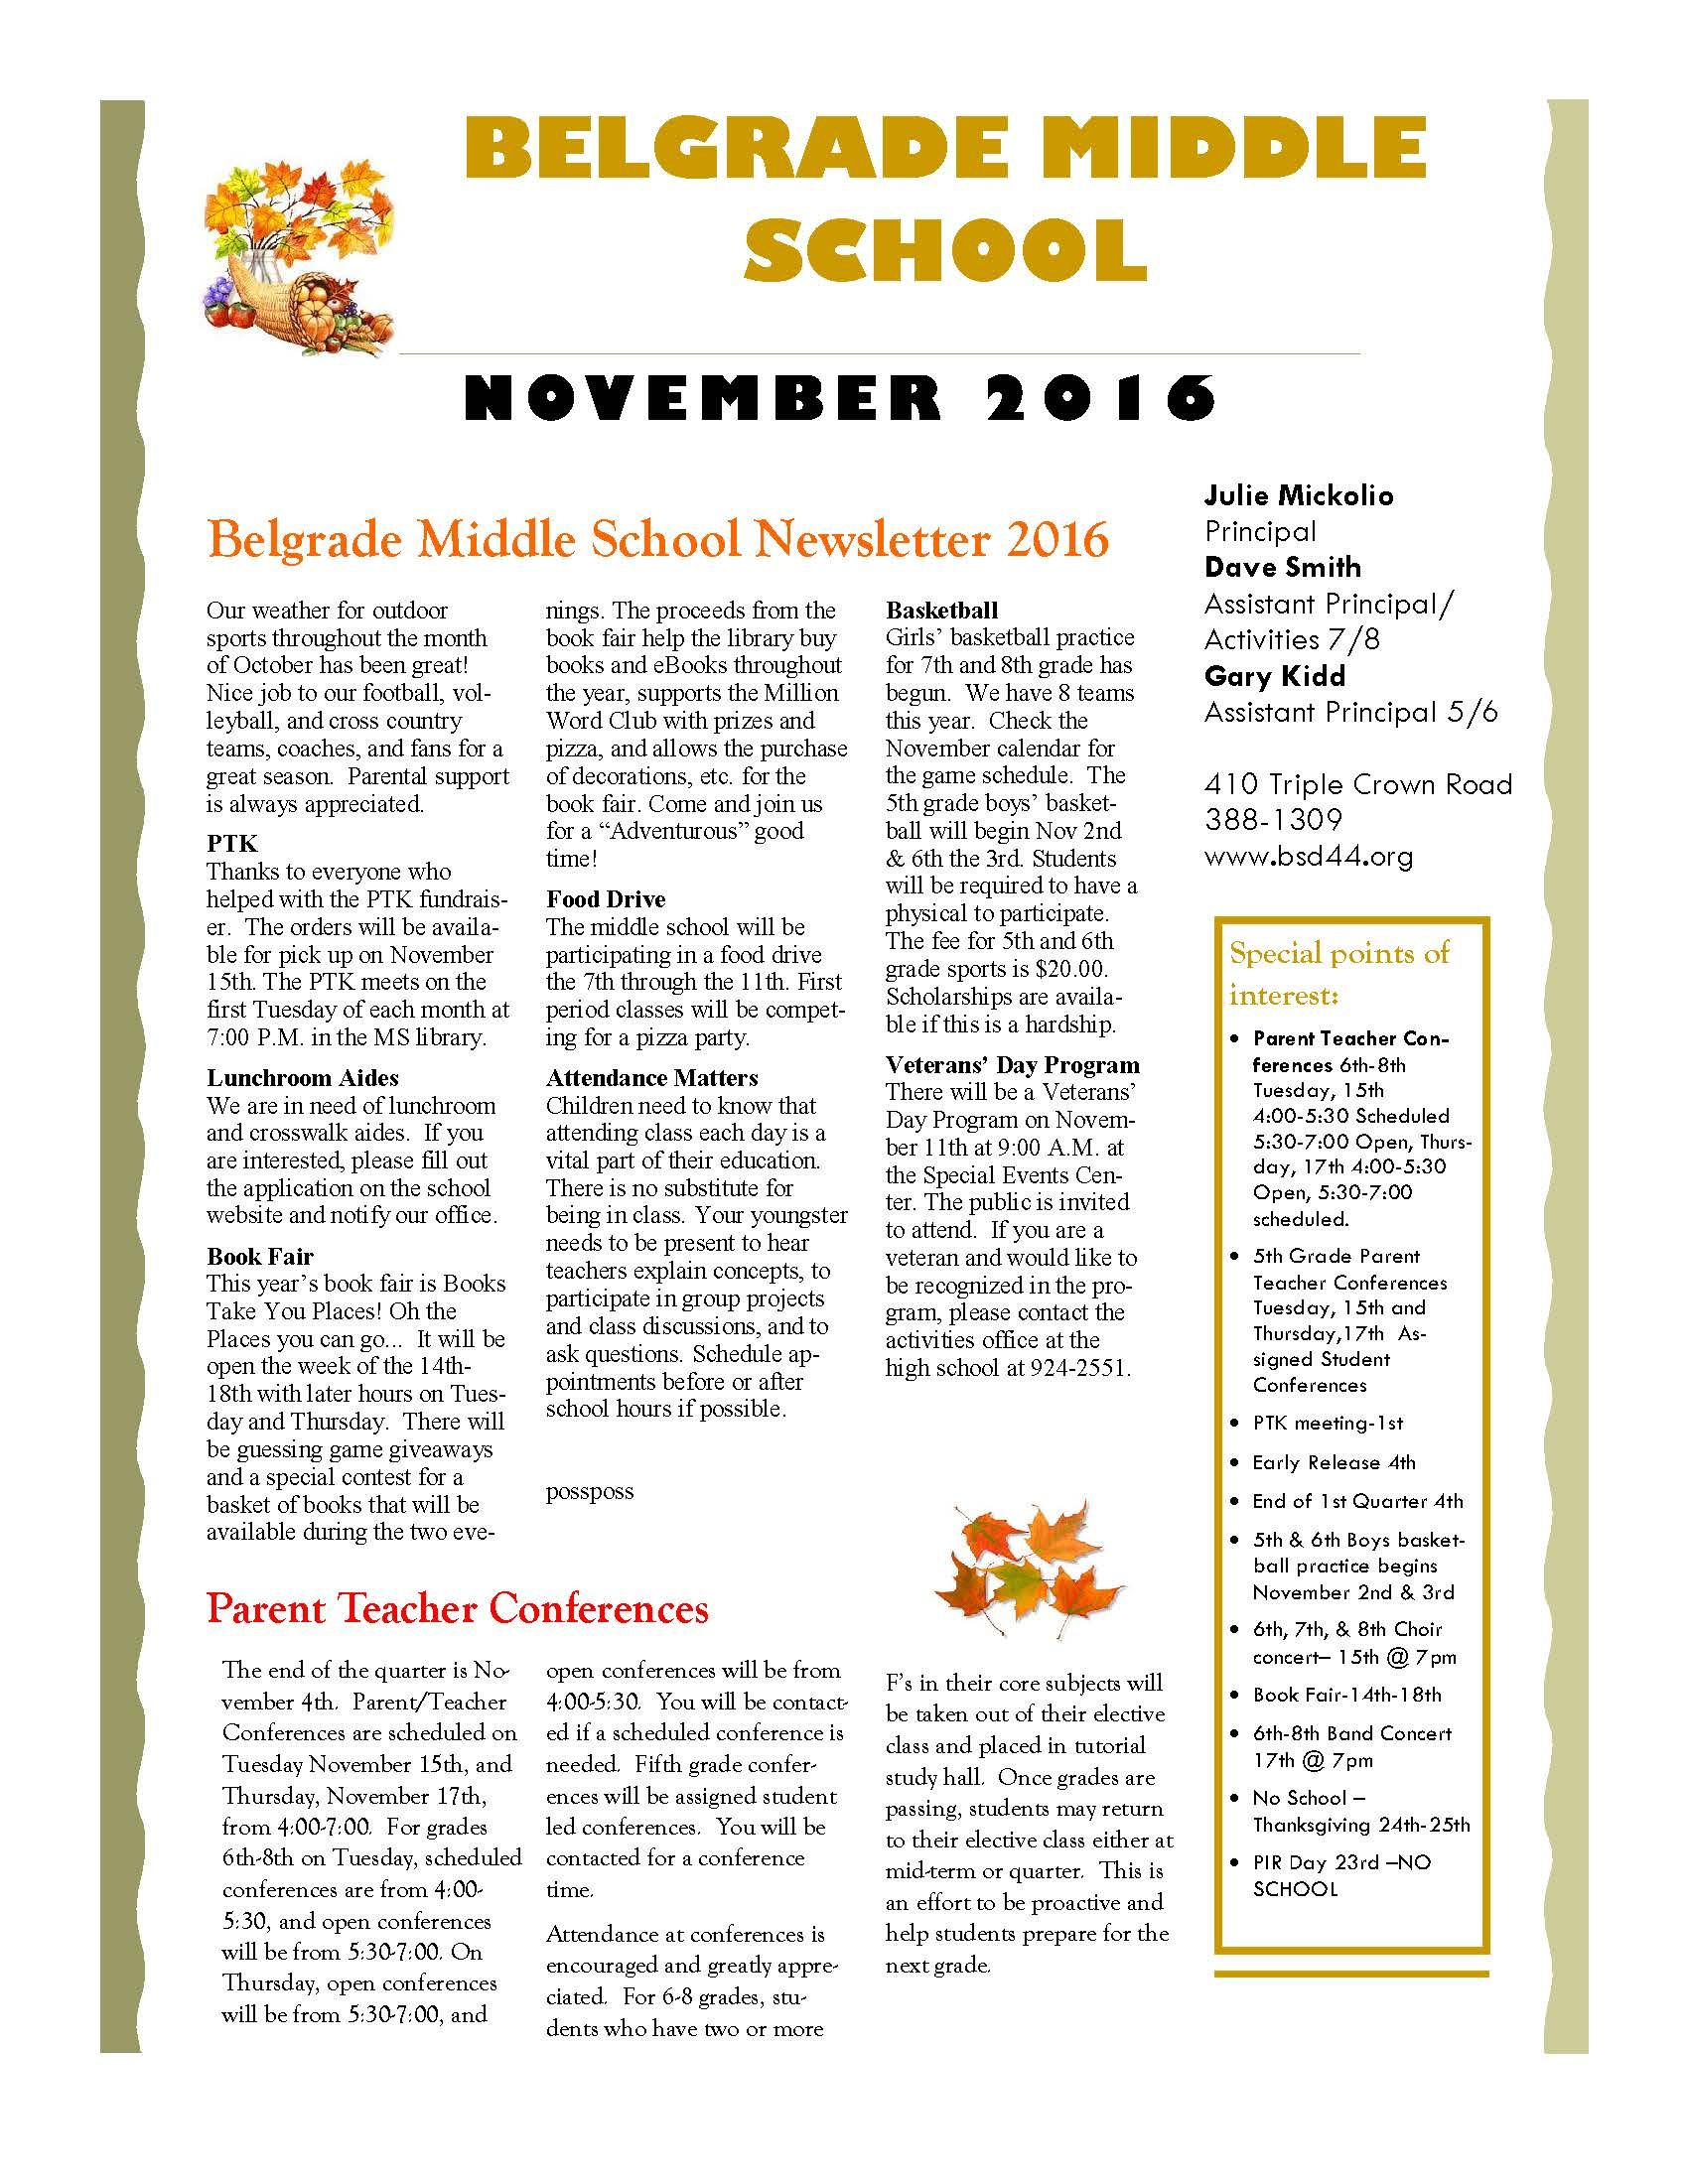 middle school november newsletter